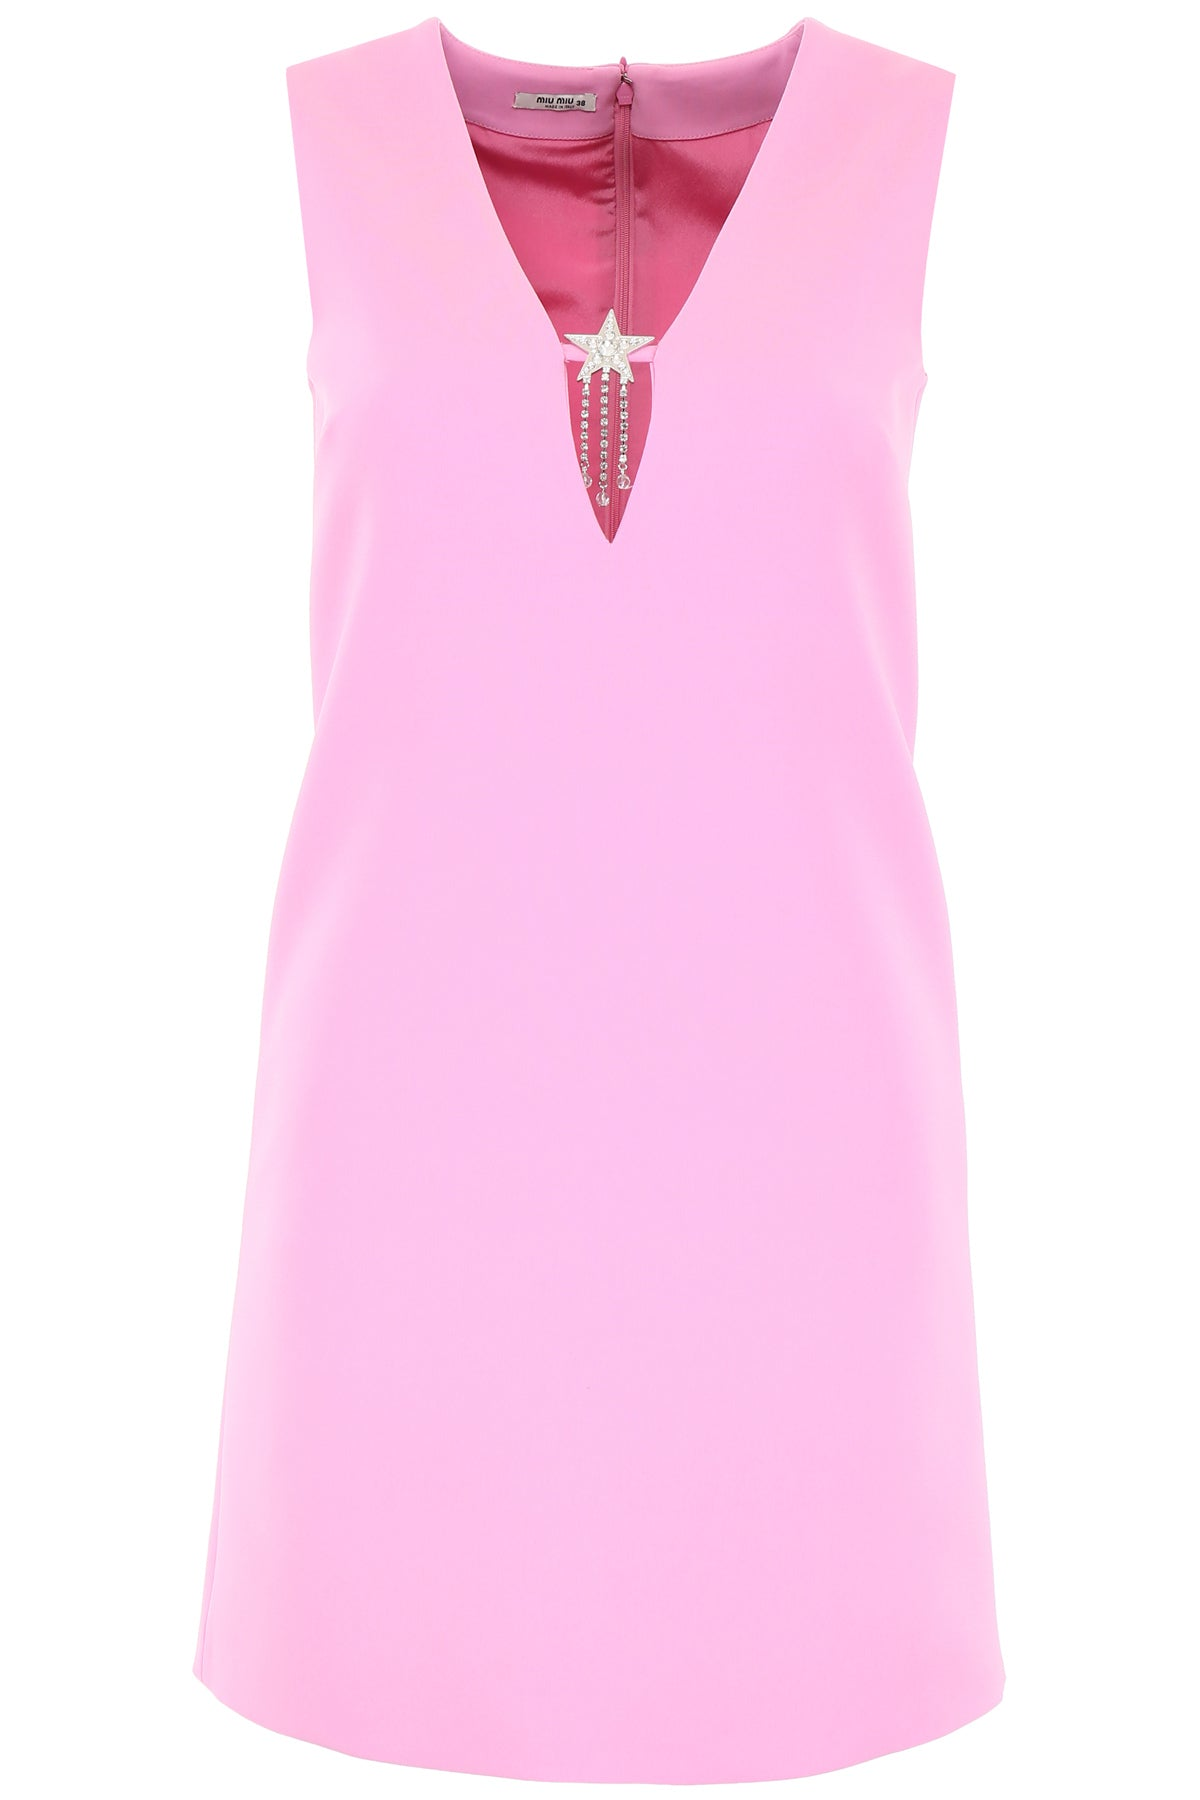 Miu Miu Dresses MIU MIU CADY CRYSTAL EMBELLISHED SLEEVELESS DRESS